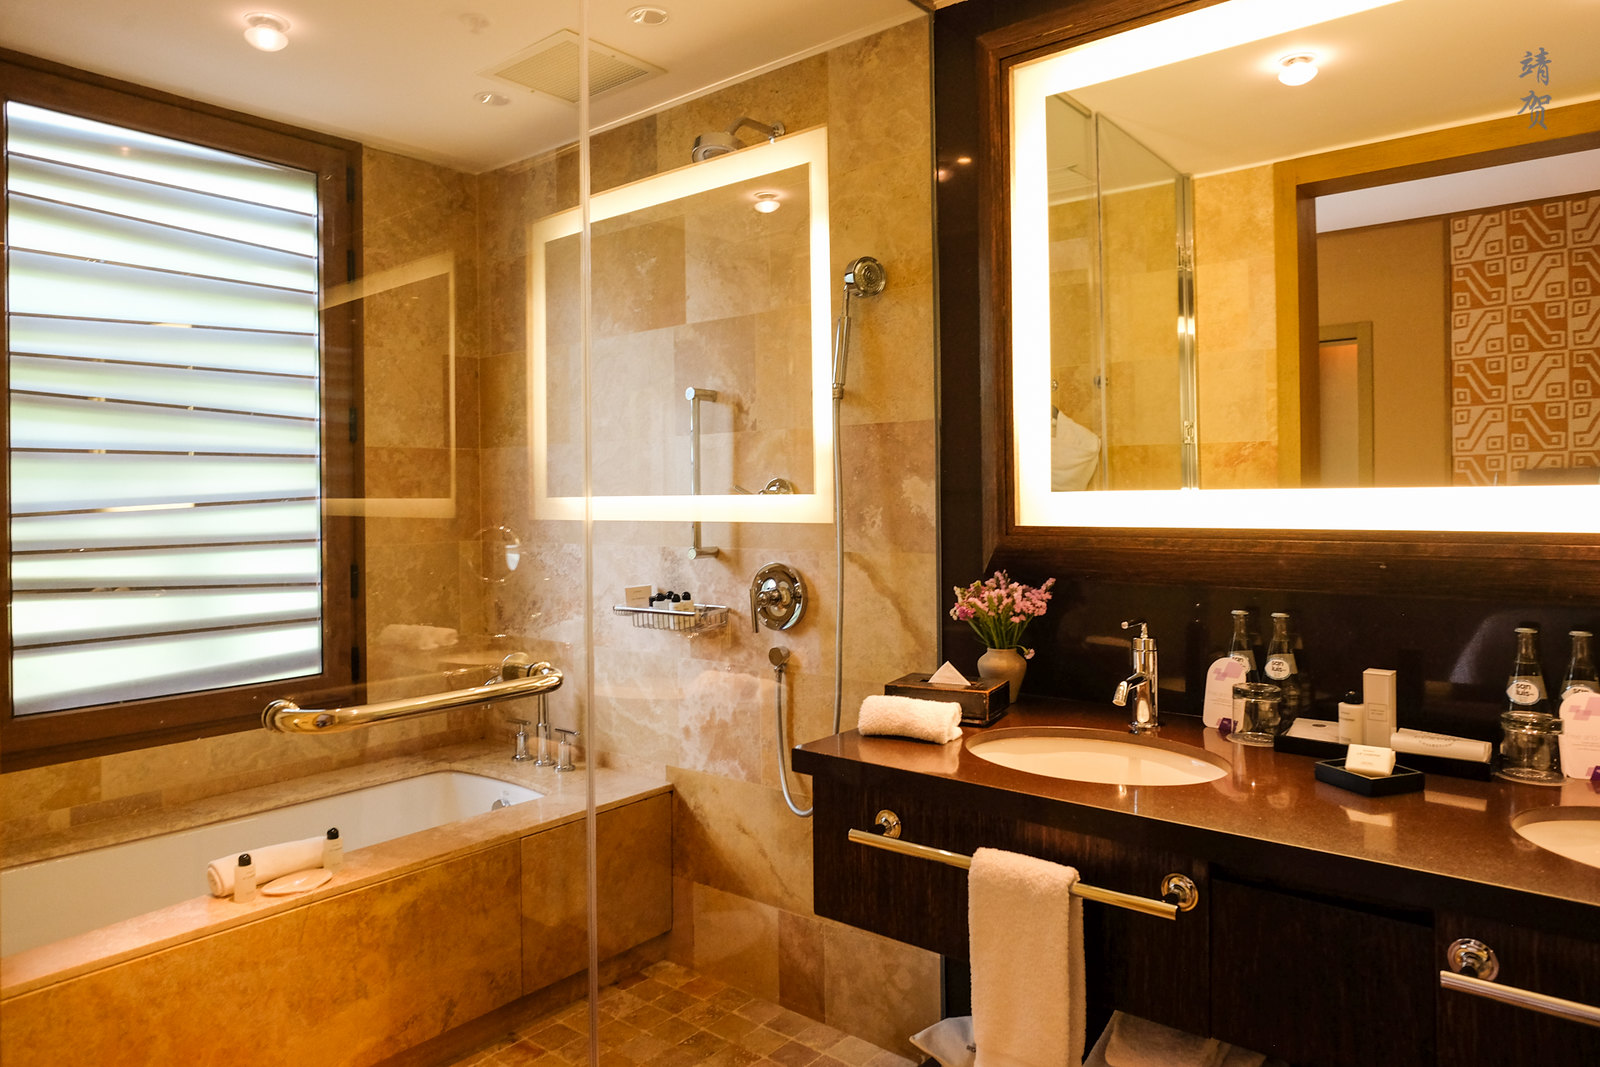 Bathroom with large shower area